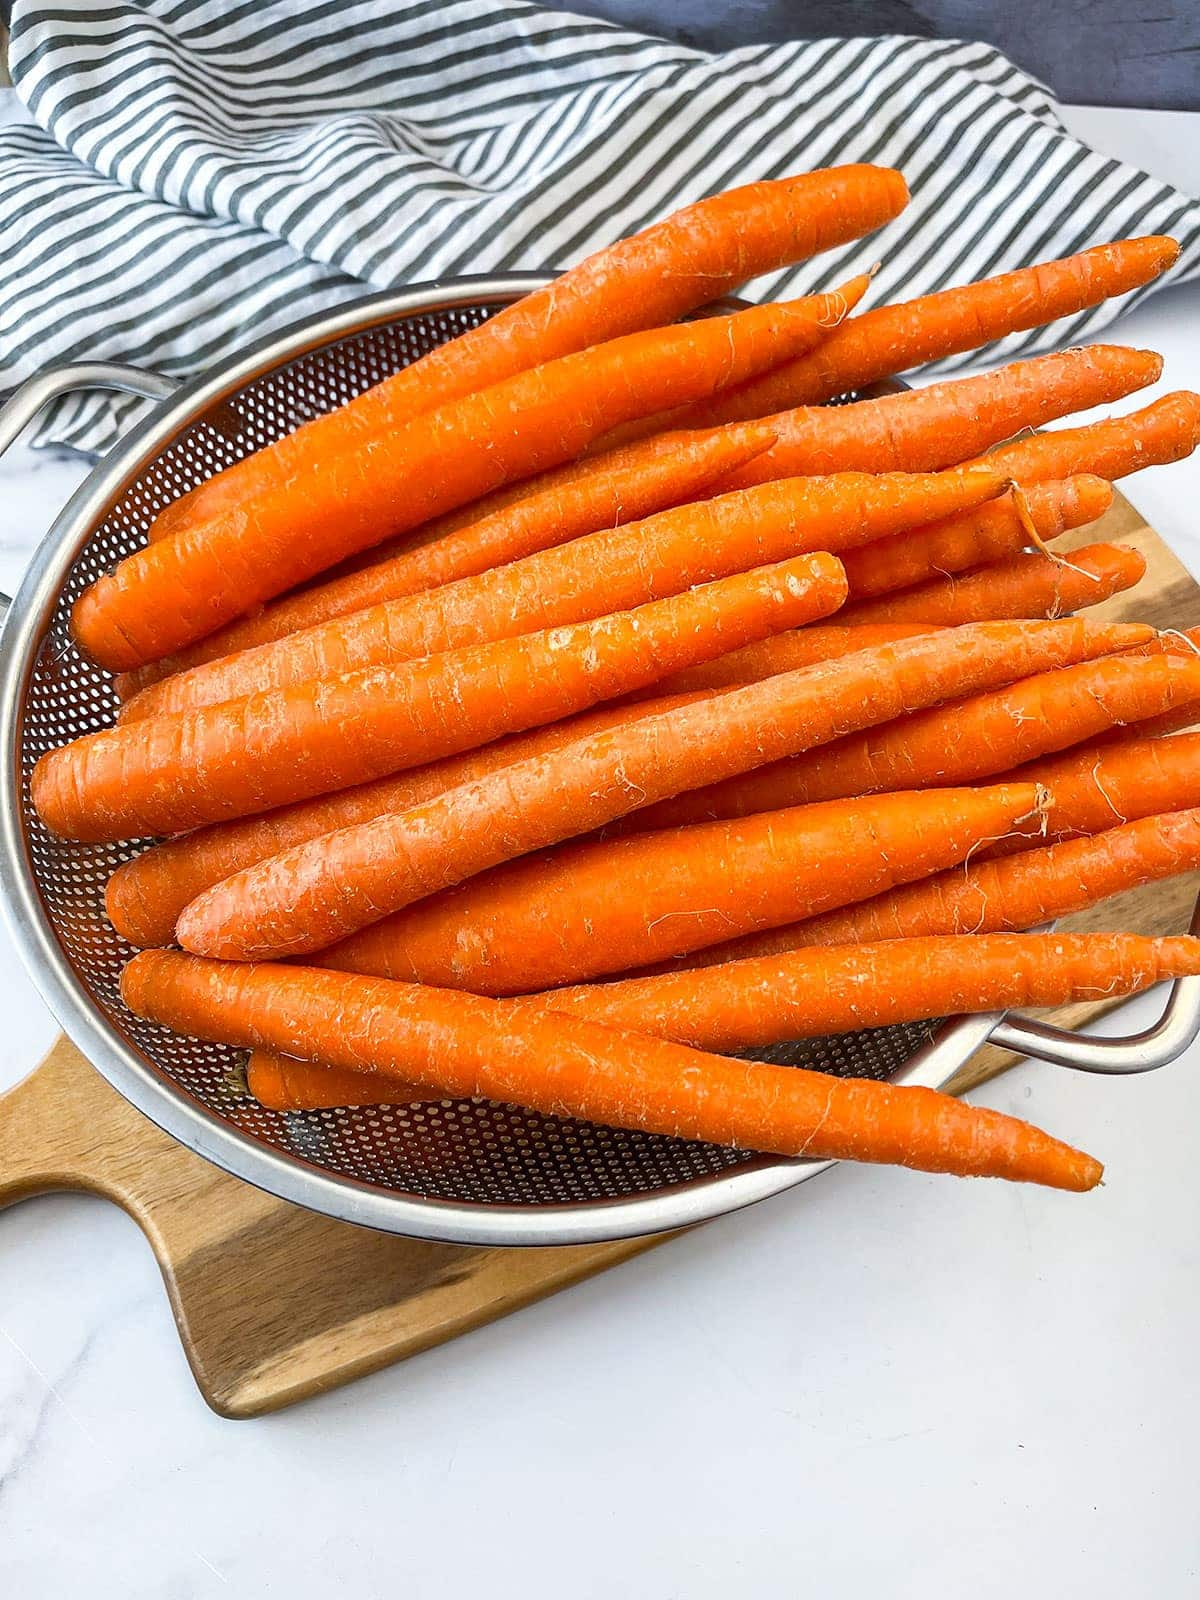 Carrots in a colander